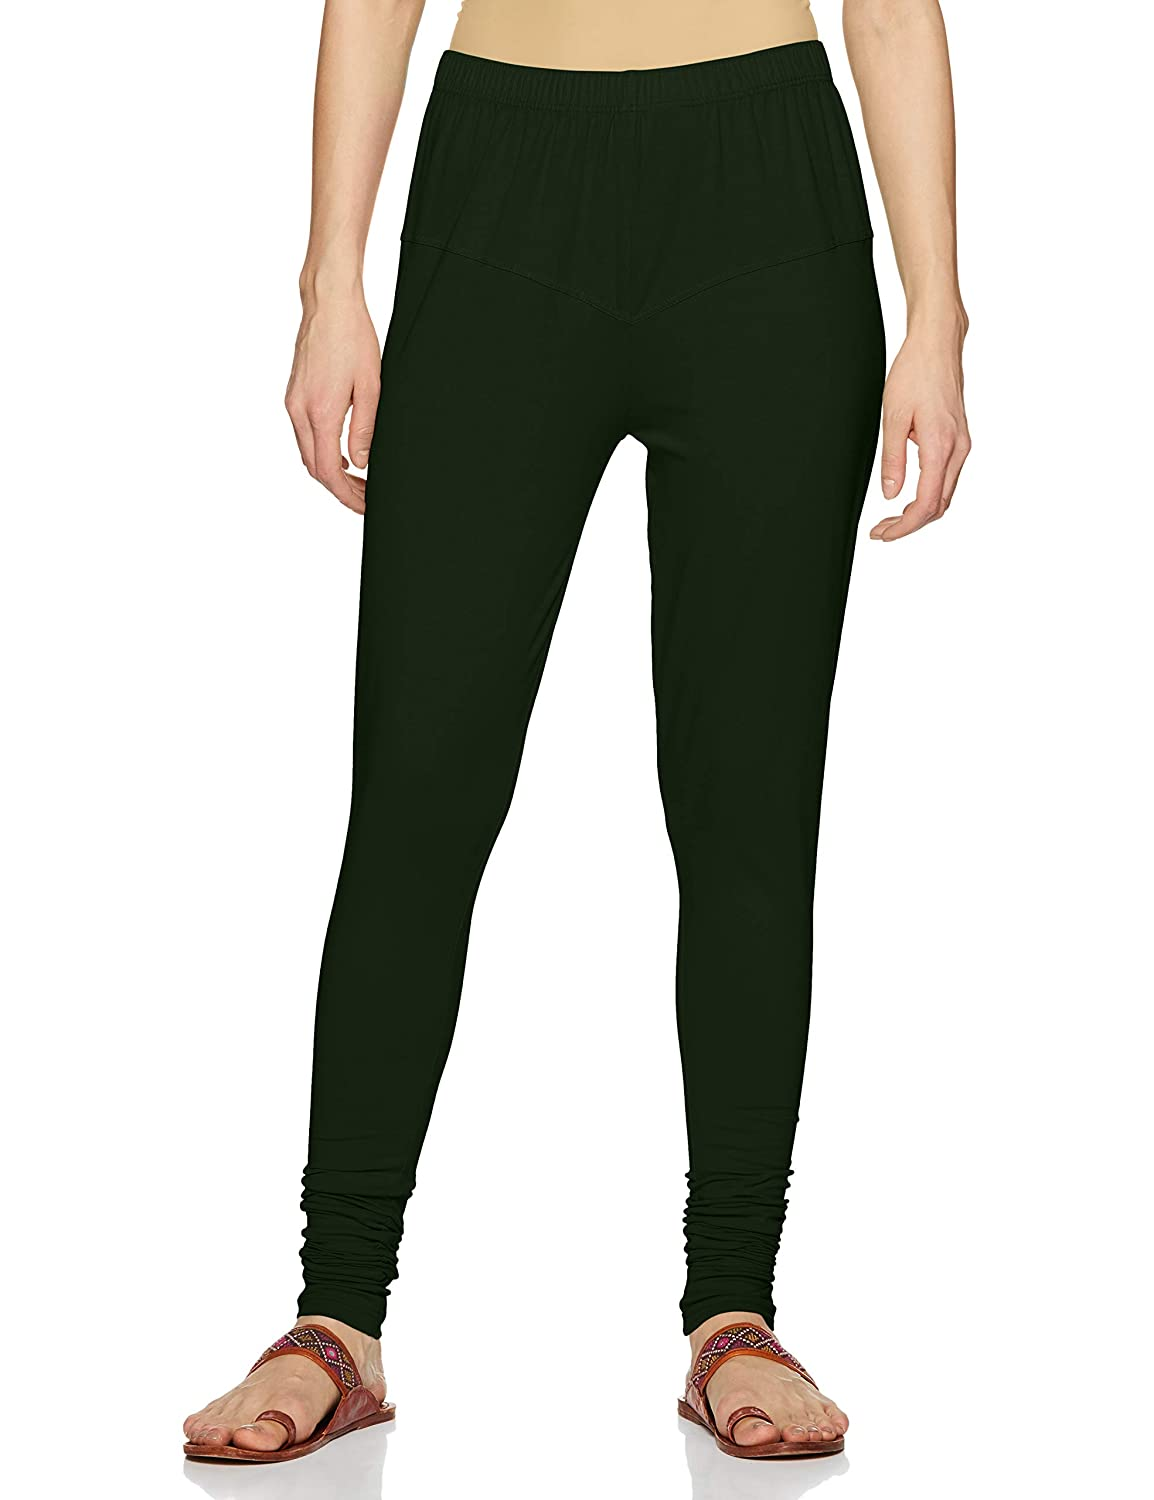 LUX LYRA Women's Leggings Silk_58_Fourleaf Green_Free Size